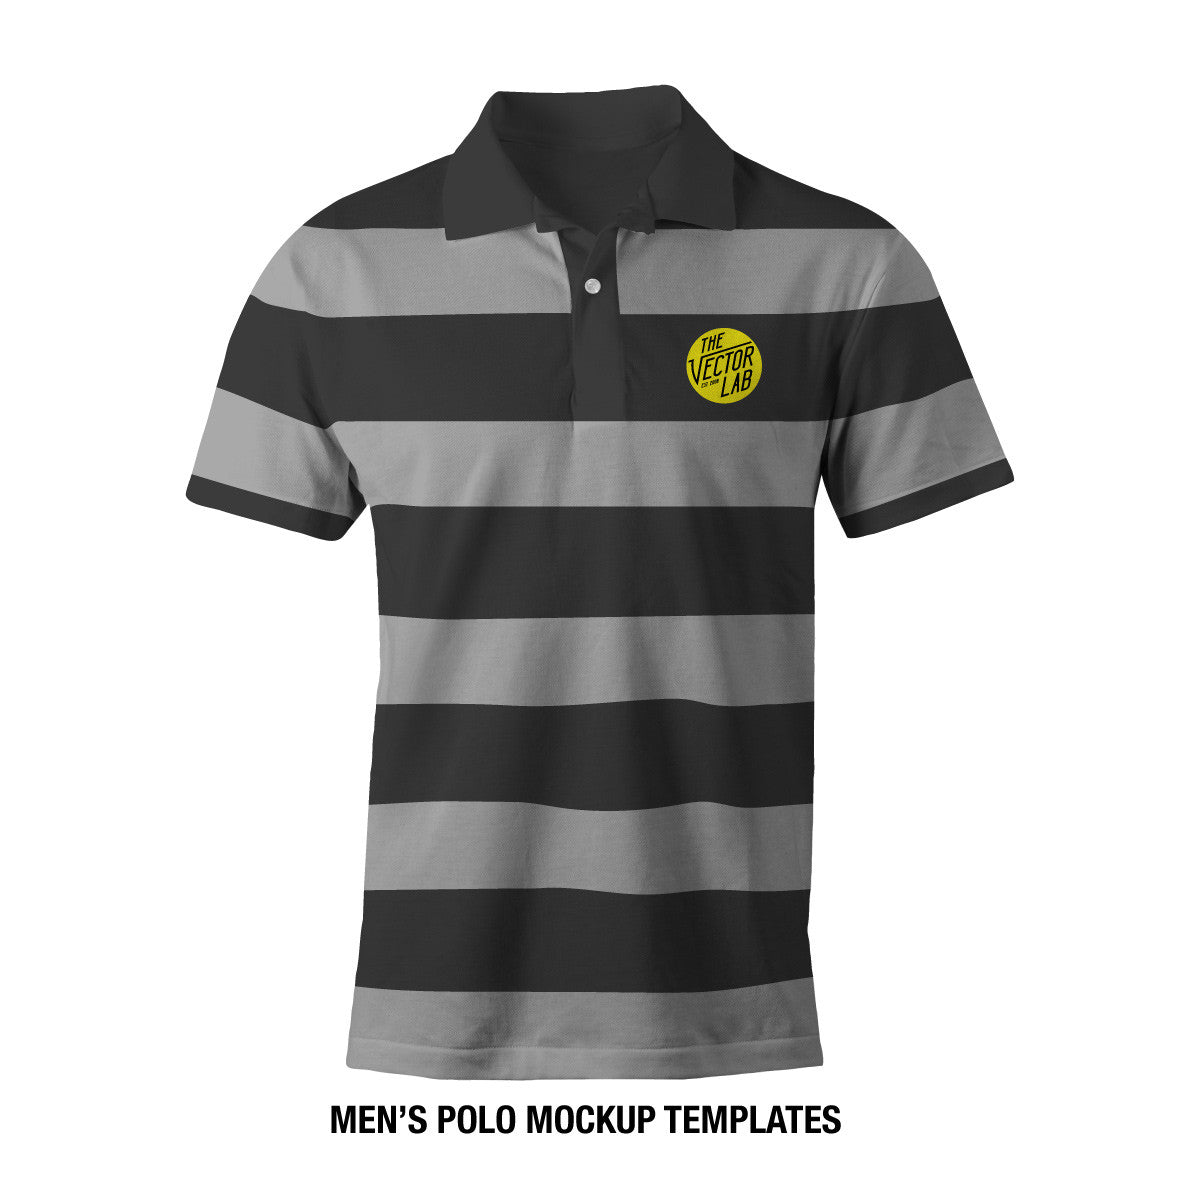 f668045c Men's Polo Mockup Templates - Photoshop PSD and Adobe Illustrator ...